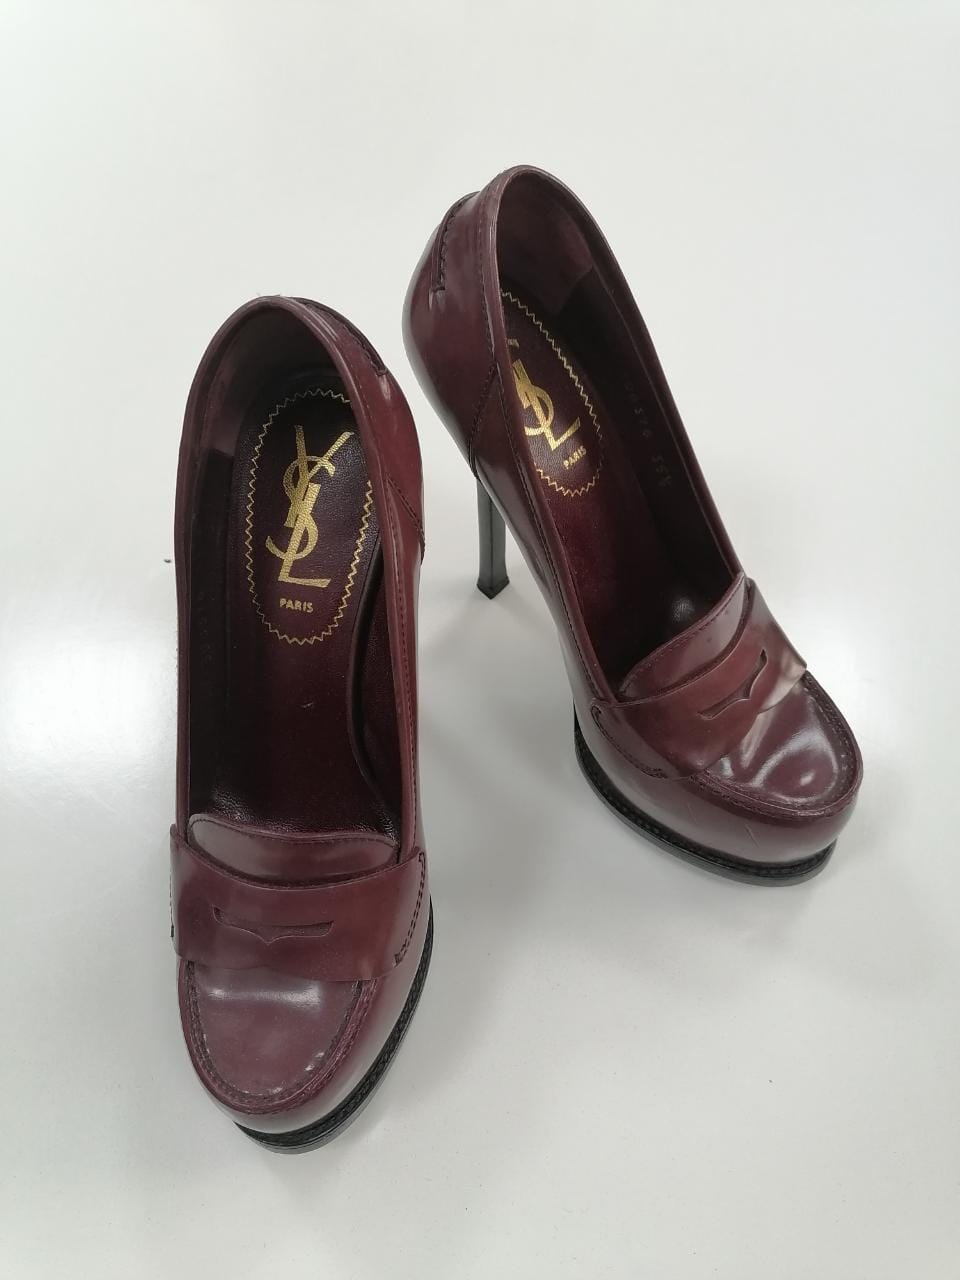 Shoes by Yves Saint Laurent